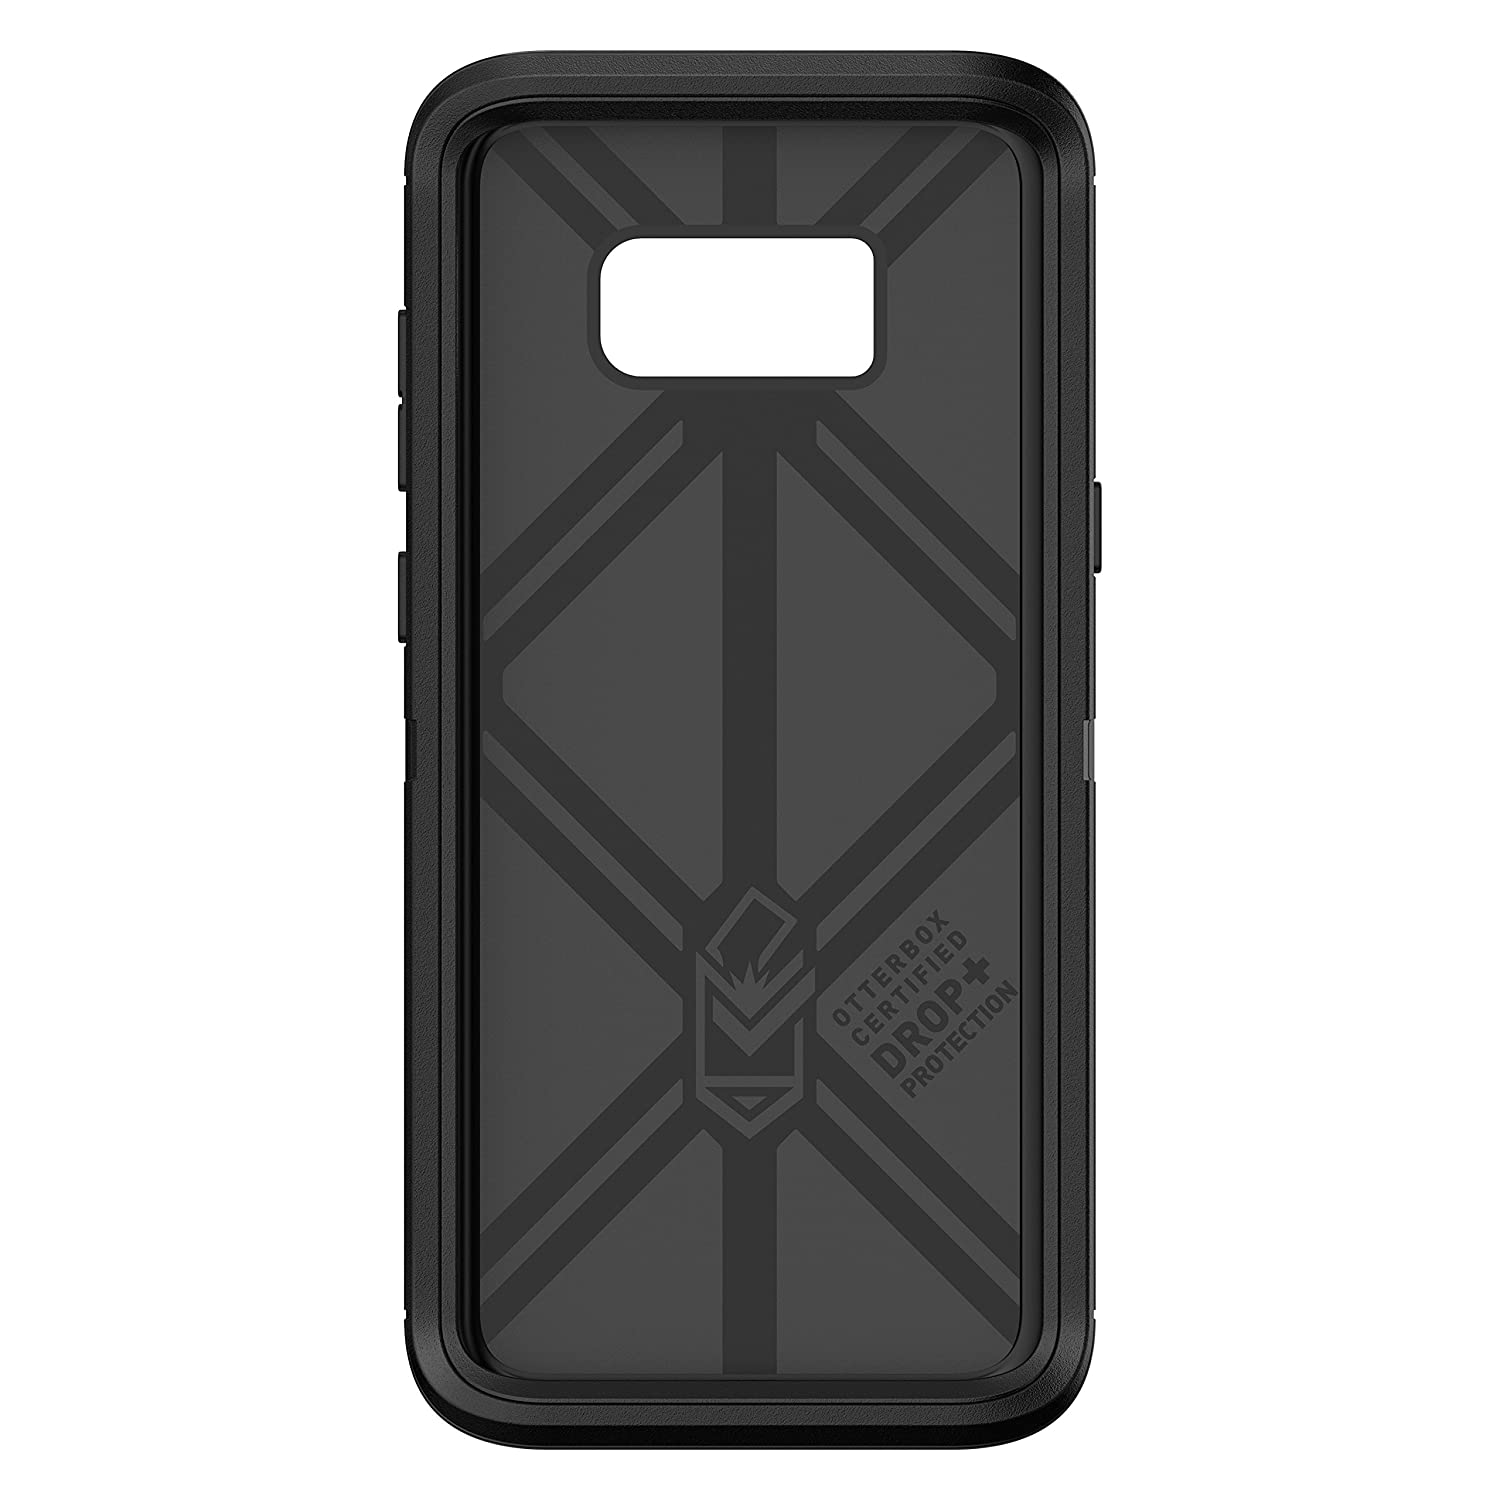 OtterBox Defender Series SCREENLESS Edition for Samsung Galaxy S8+ - Frustration Free Packaging - Black